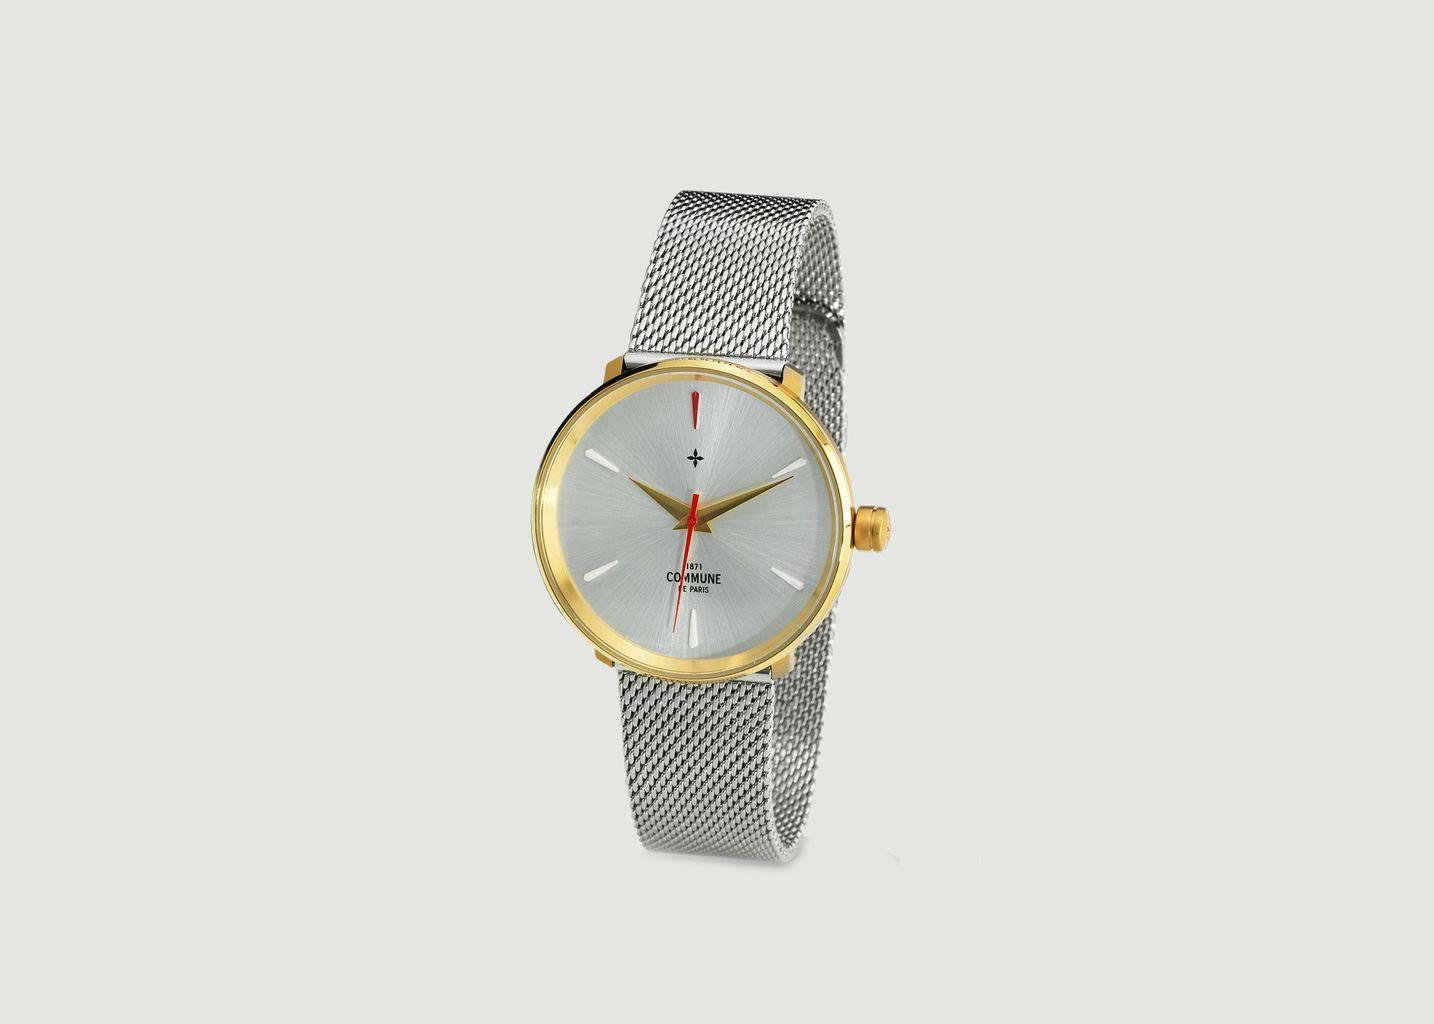 Montre Frimaire - Commune de Paris